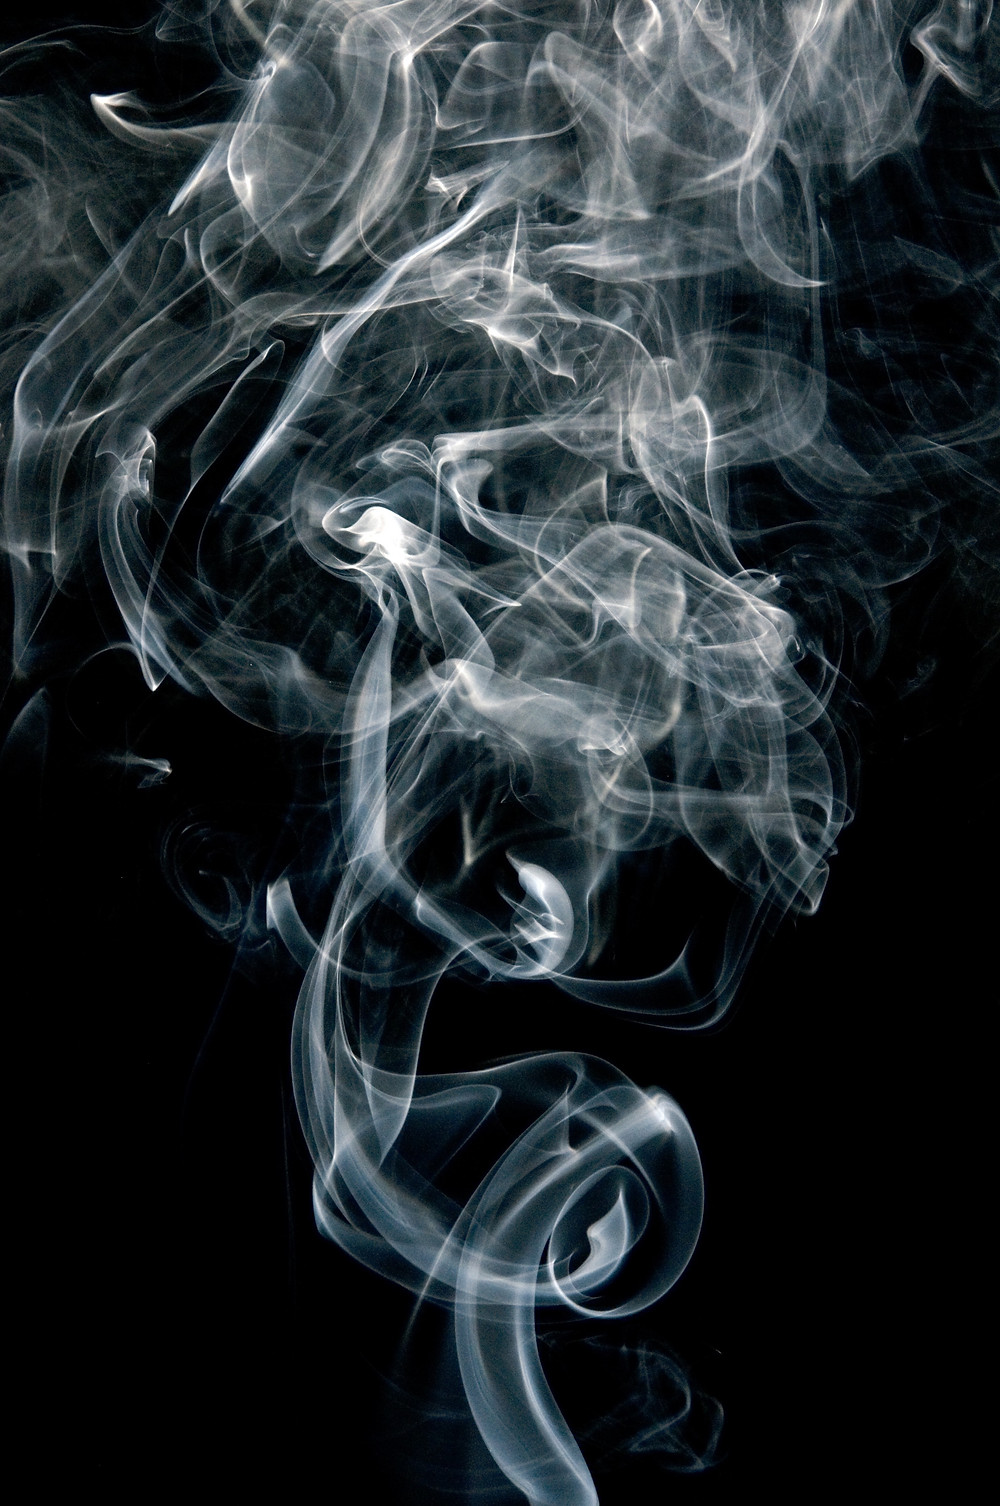 Smoke dissipates on a black background.